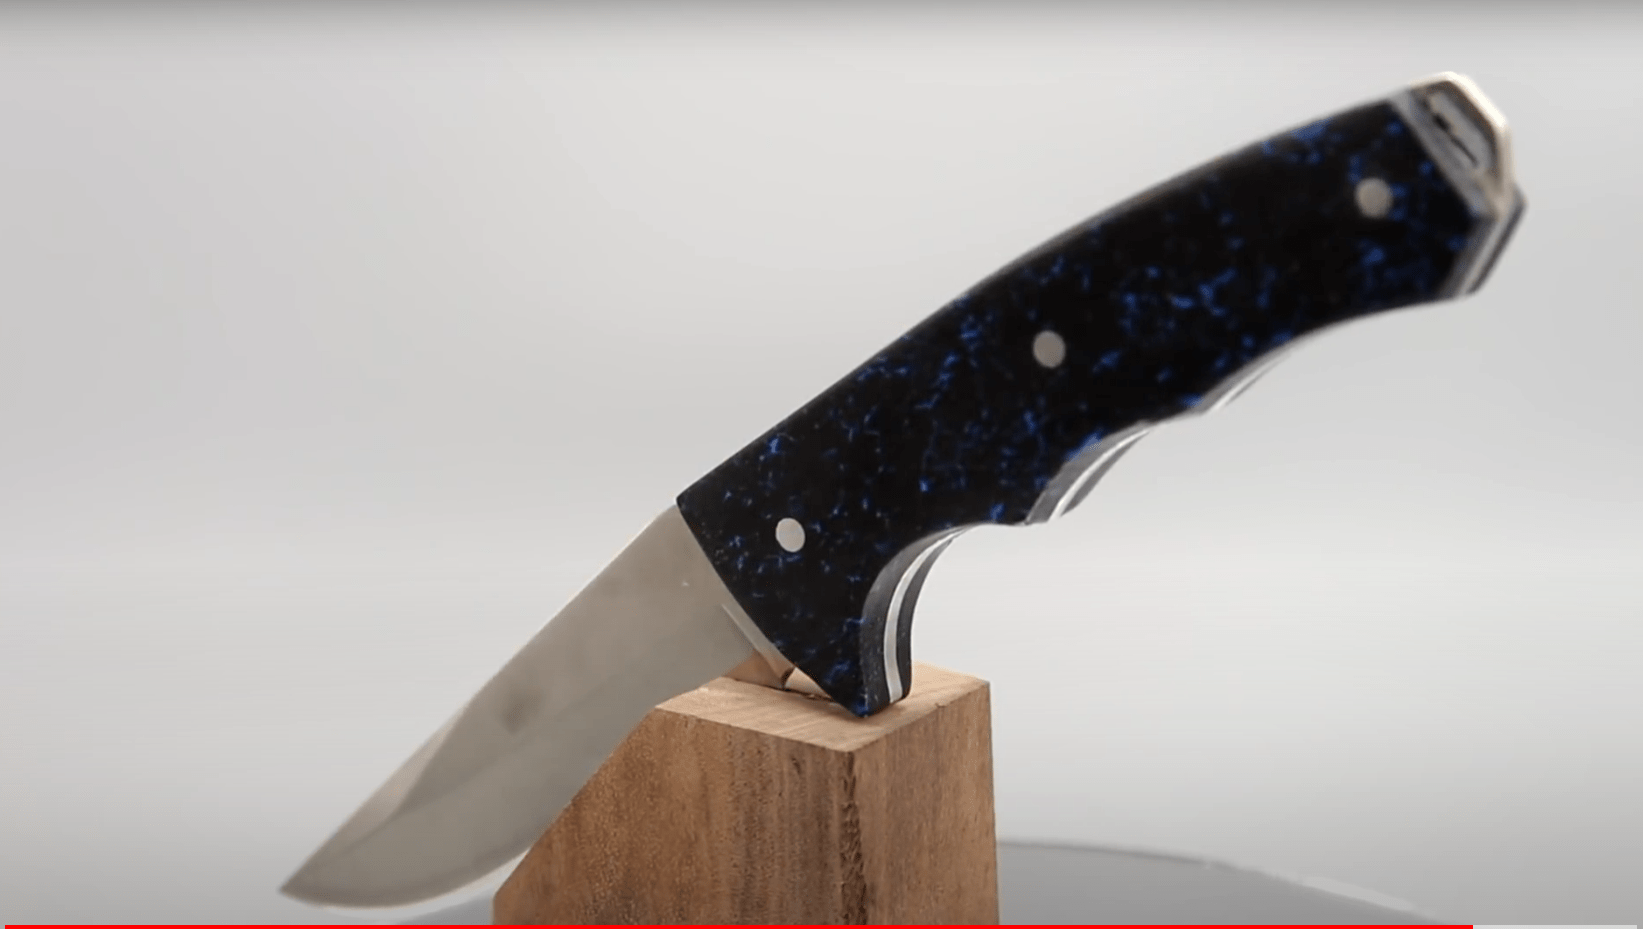 Knife Scales from Kitchen Supplies?!